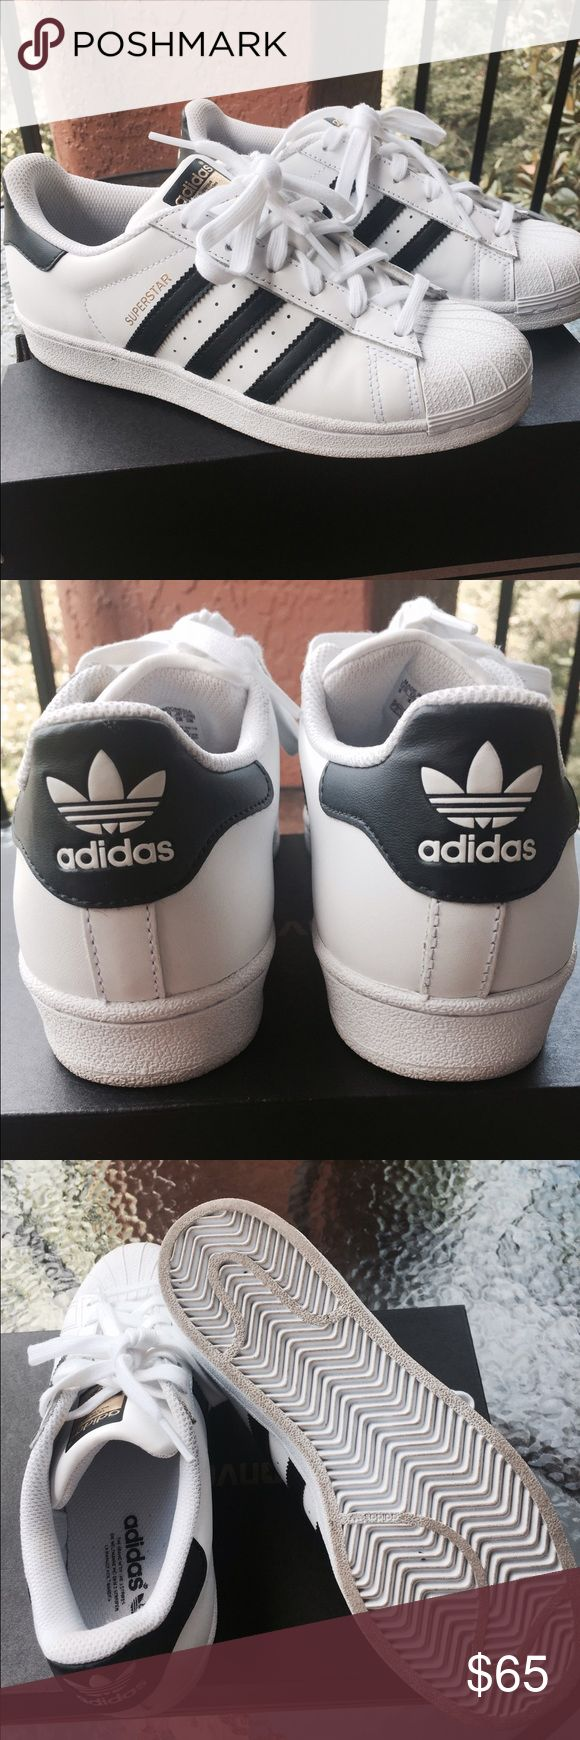 Selling this Adidas Superstar Sneakers on Poshmark! My username is: rpa25. #shopmycloset #poshmark #fashion #shopping #style #forsale #adidas #Shoes